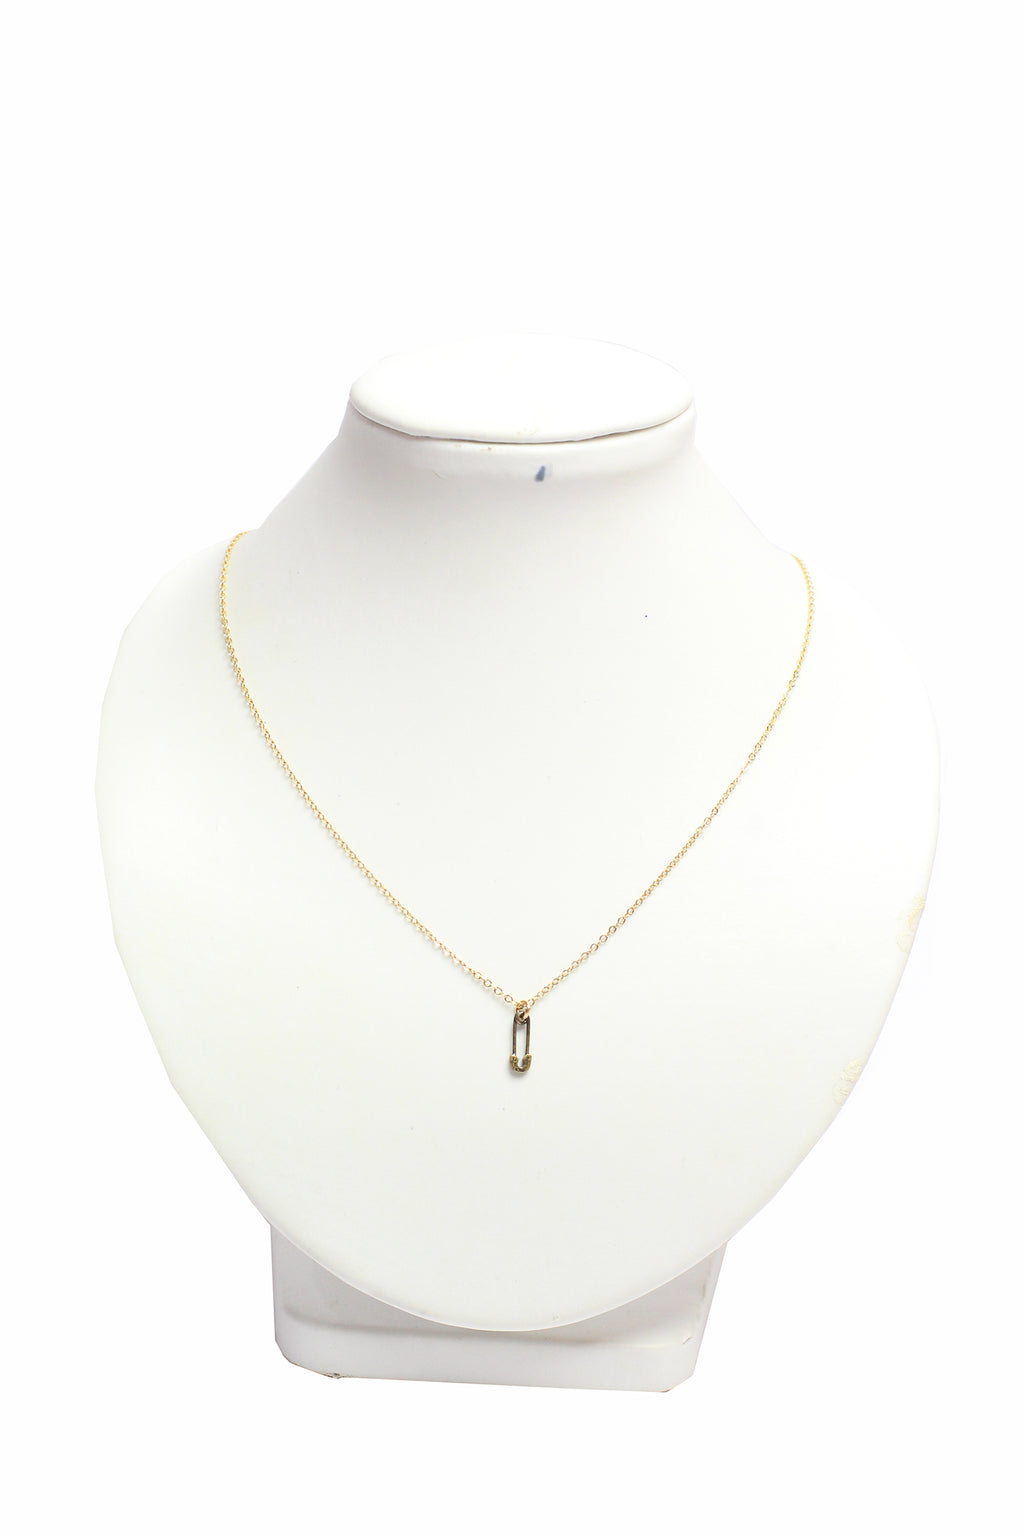 "Dogeared - New mom necklace, safety pin, 18"" with 2"" extender"